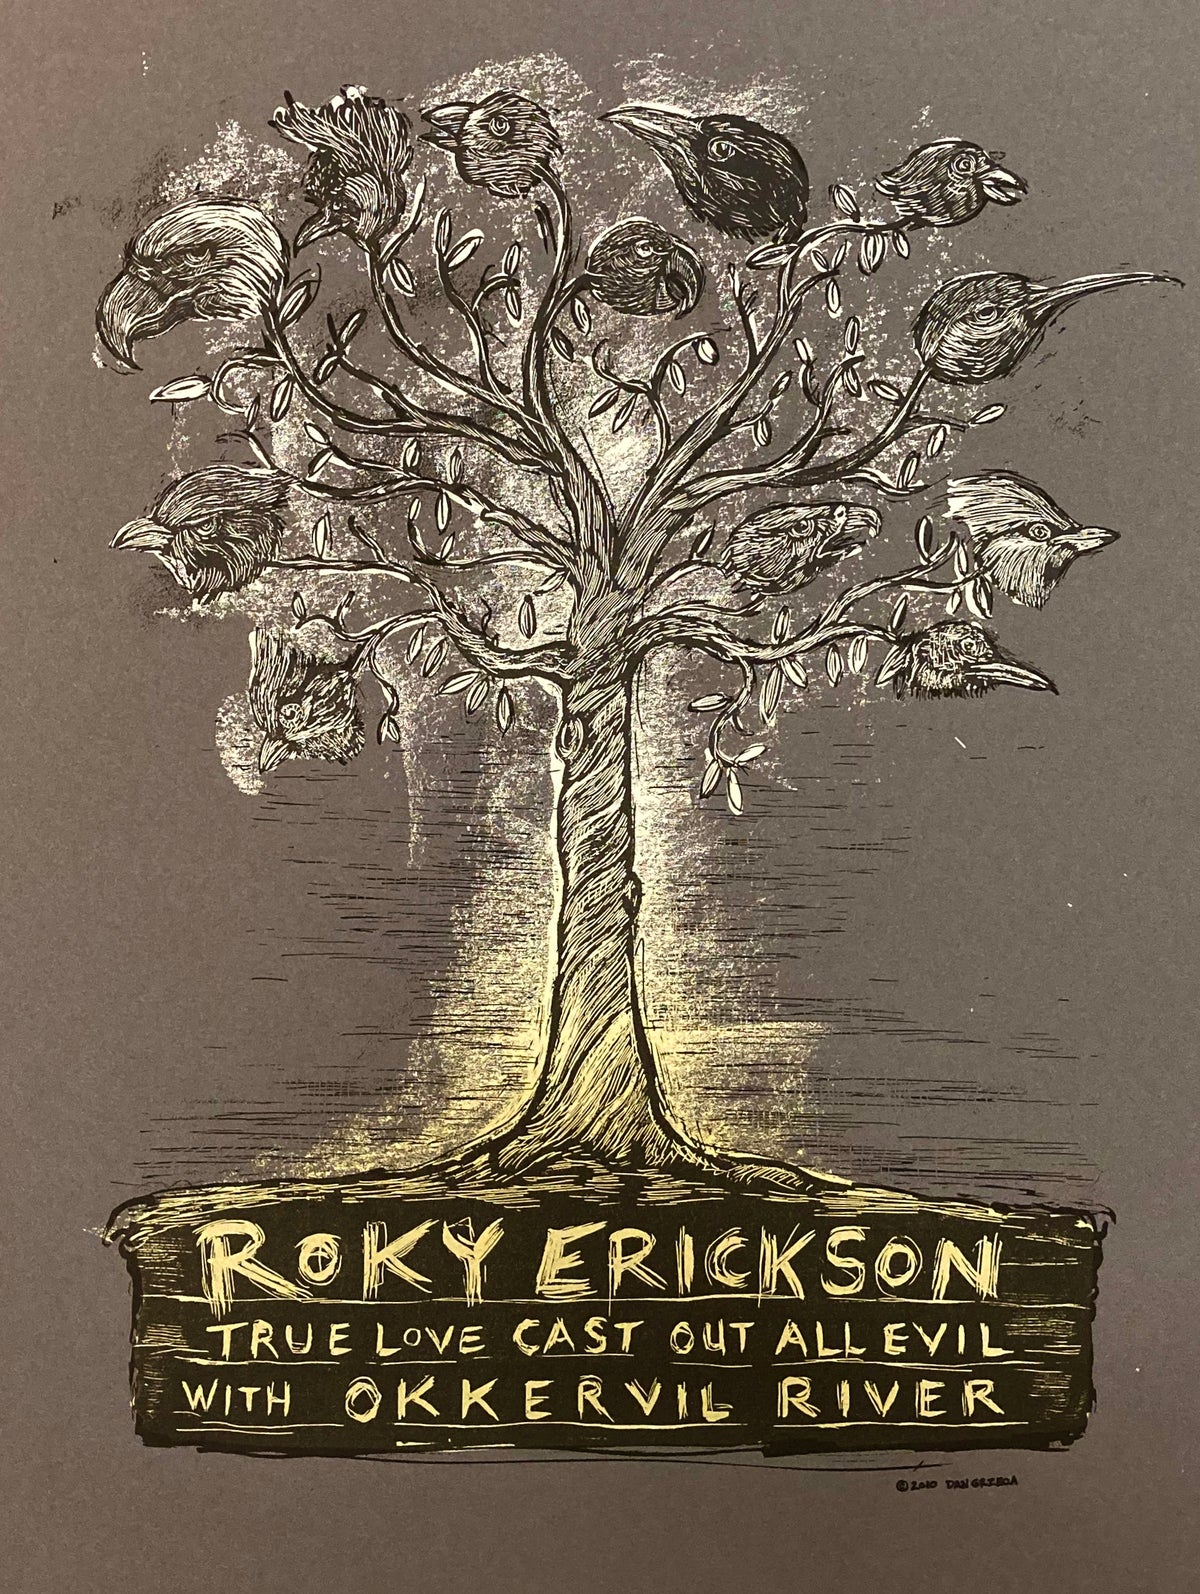 Roky Erickson and Okkervil River